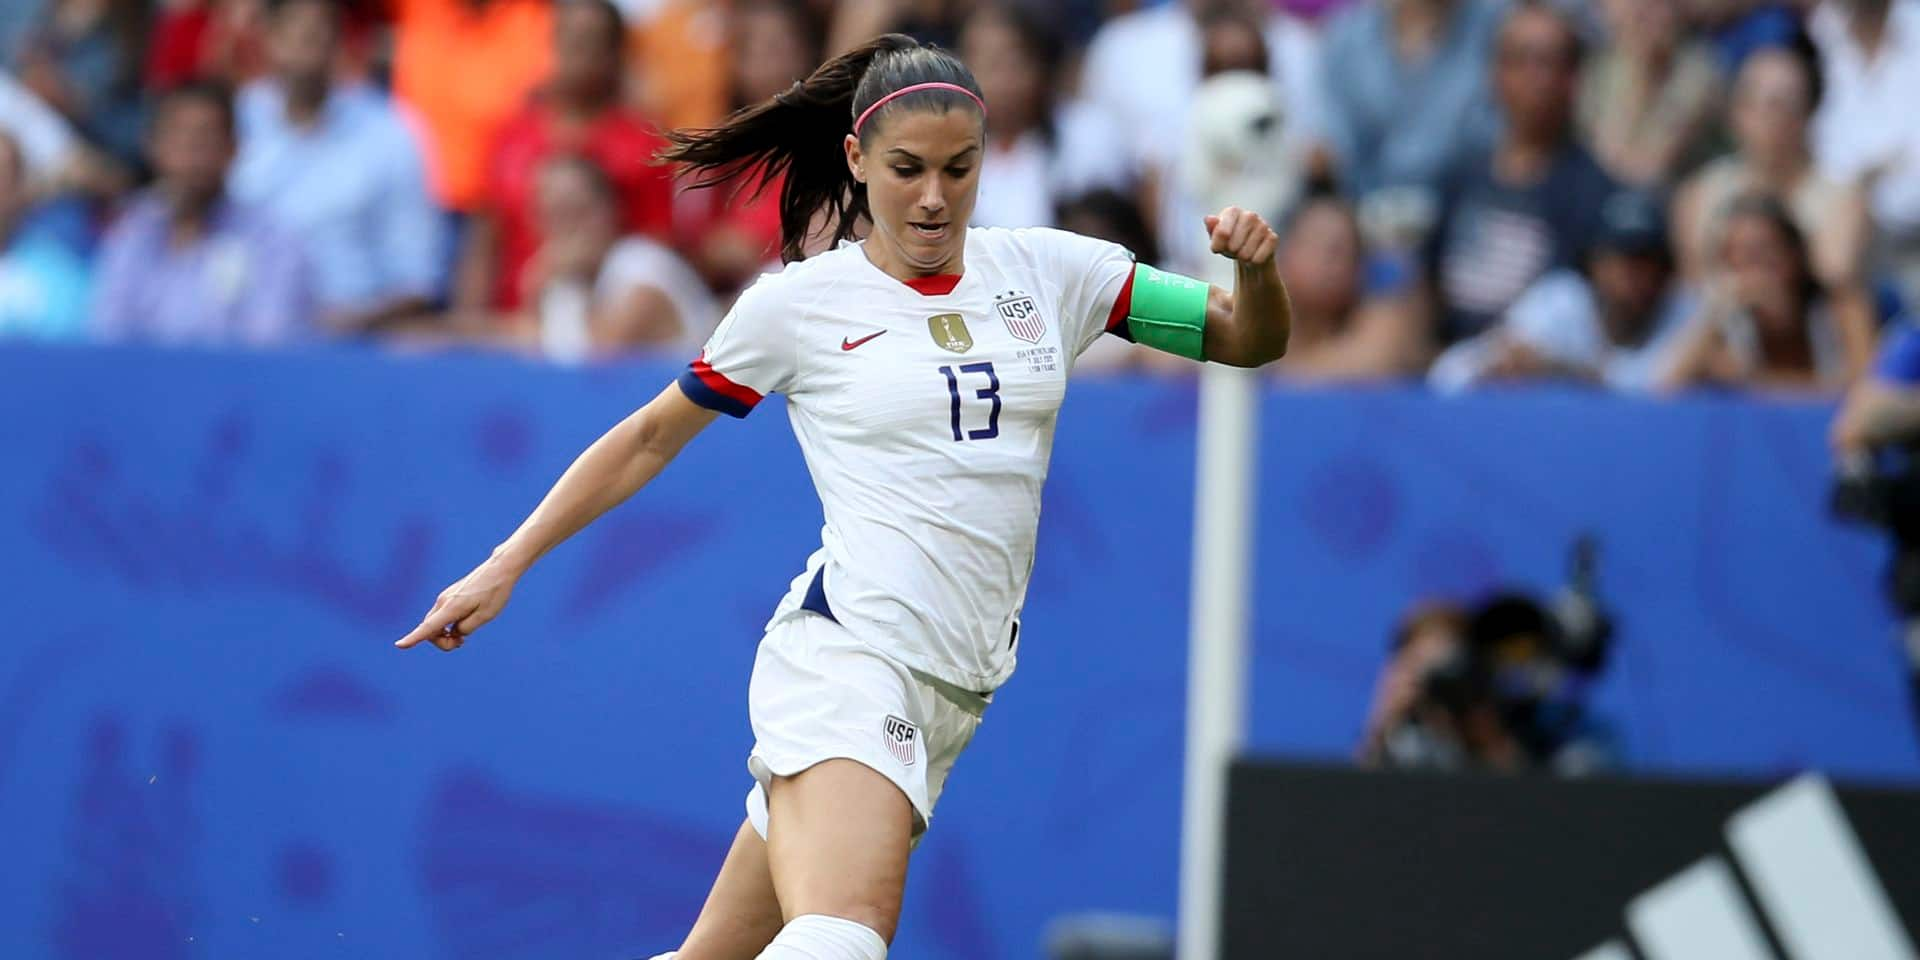 United States' Alex Morgan controls the ball during the Women's World Cup final soccer match between US and The Netherlands at the Stade de Lyon in Decines, outside Lyon, France, Sunday, July 7, 2019. (AP Photo/David Vincent)